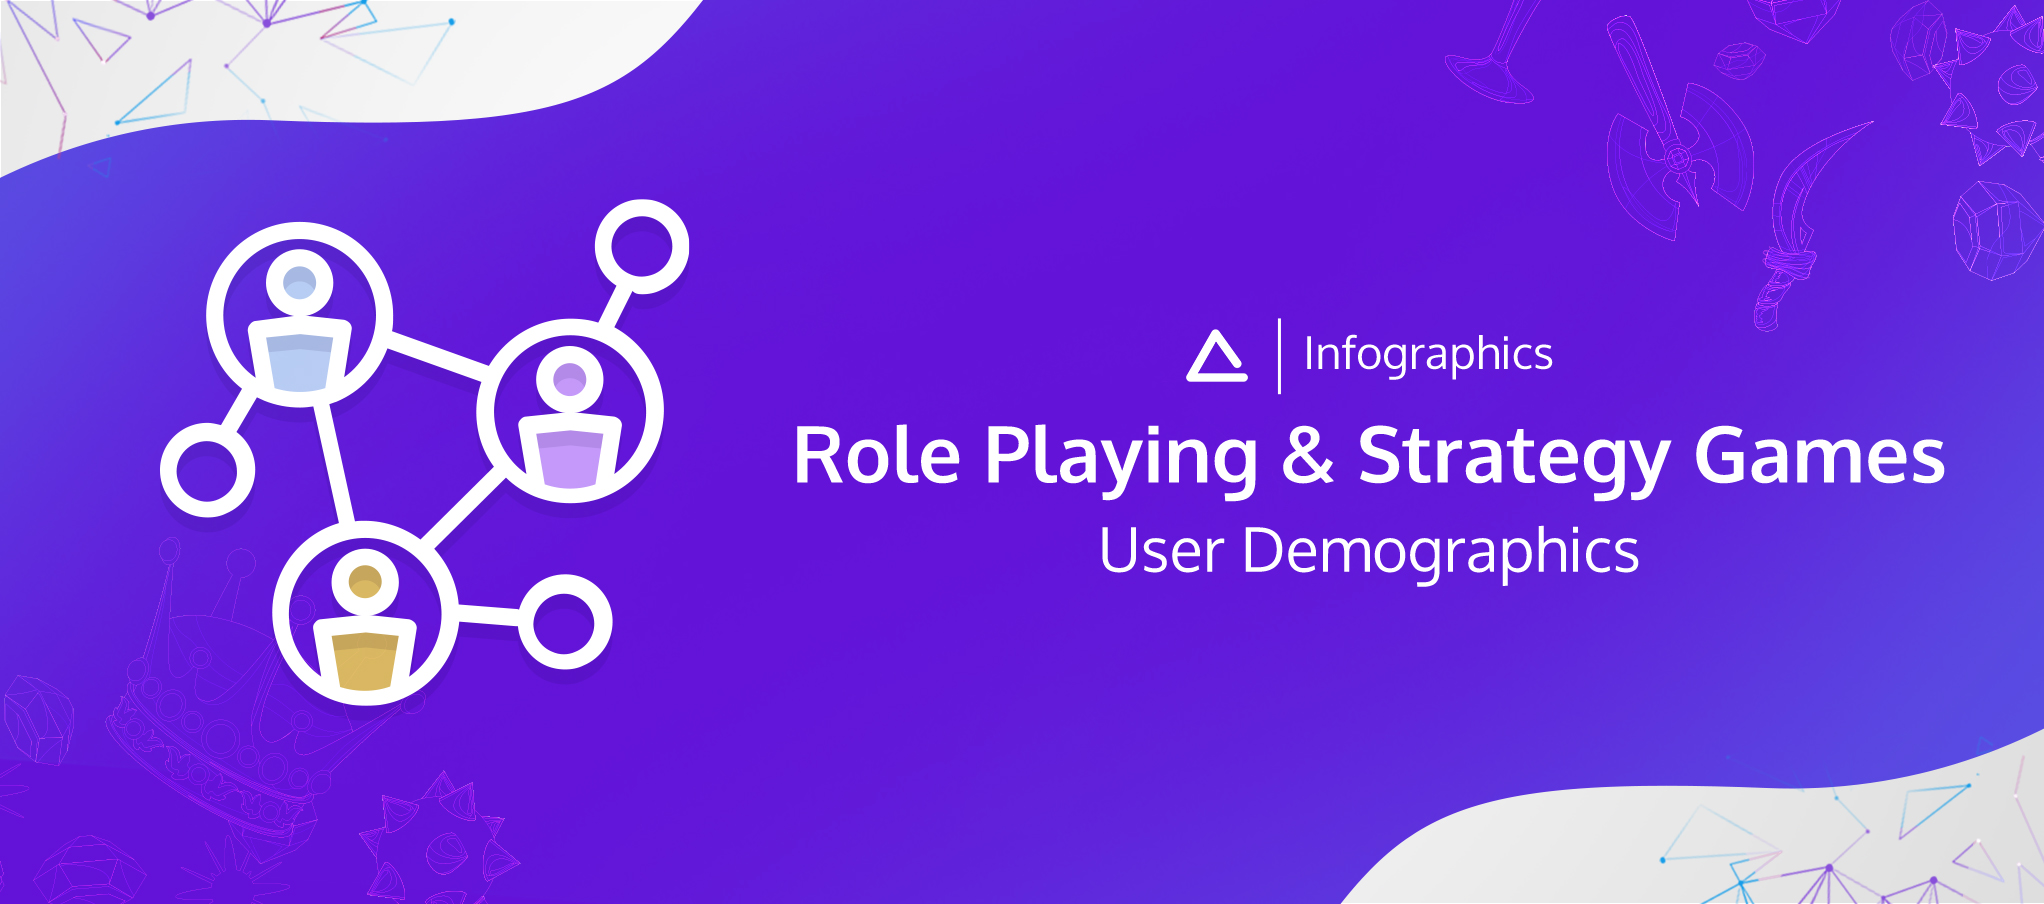 Core Apps User Demographics